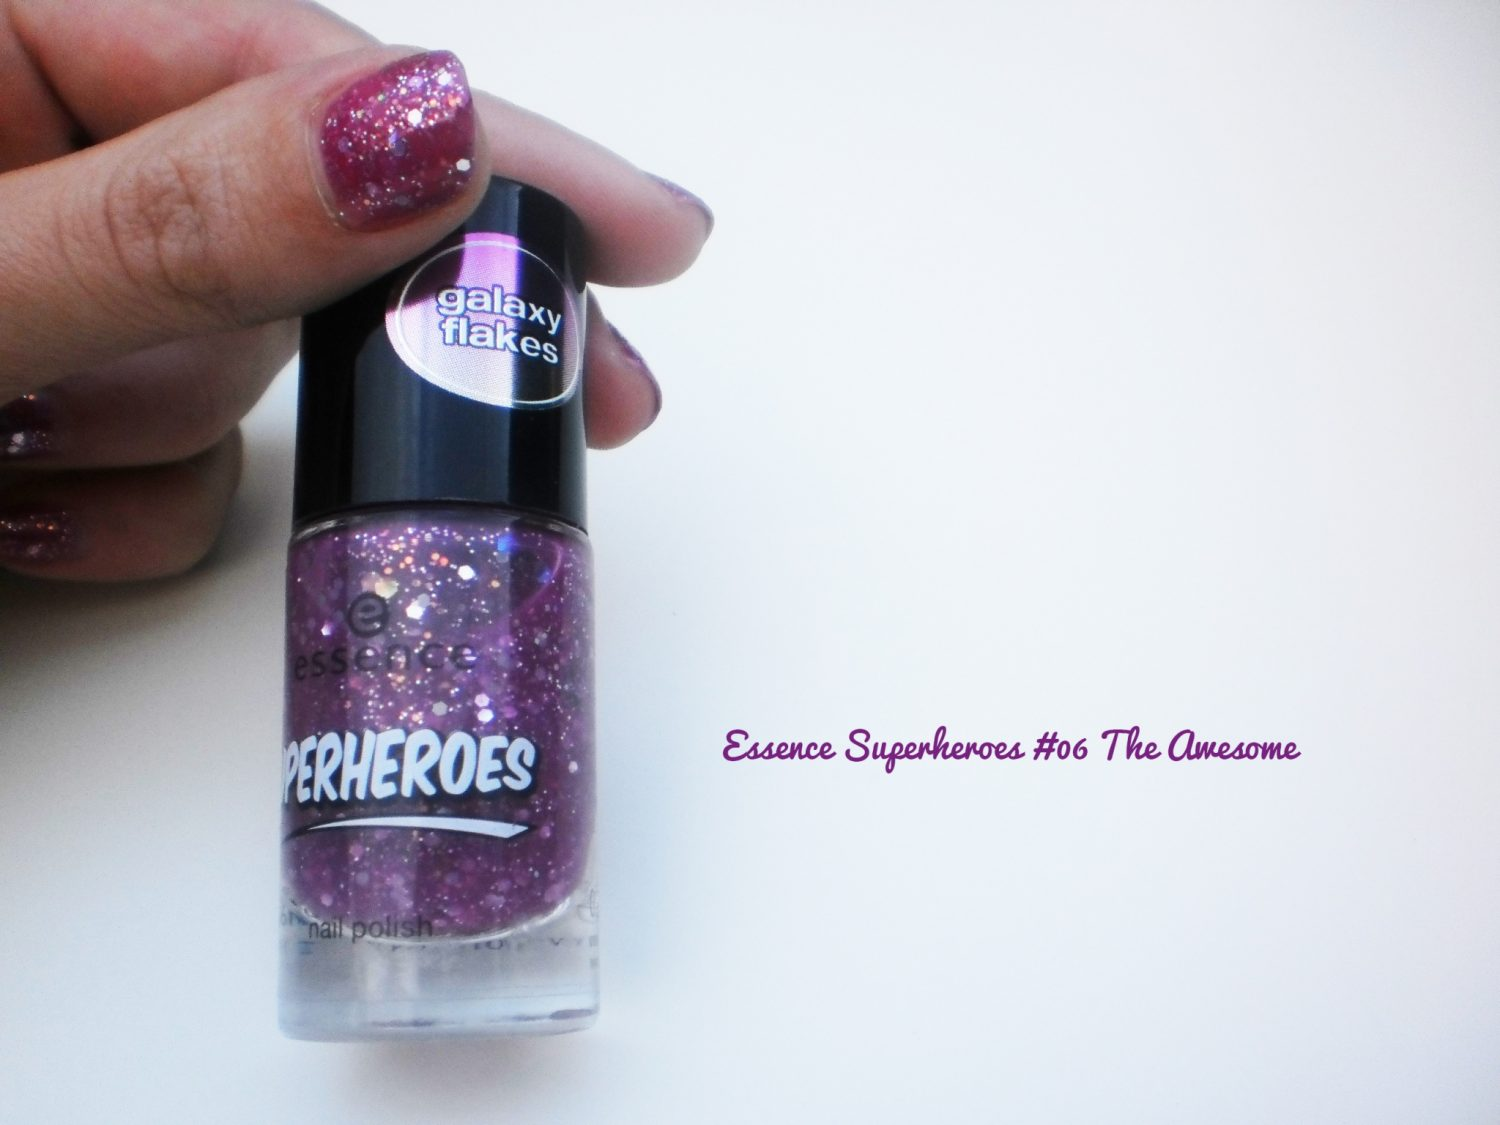 Swatch: Essence Super Heroes #06 The Awesome